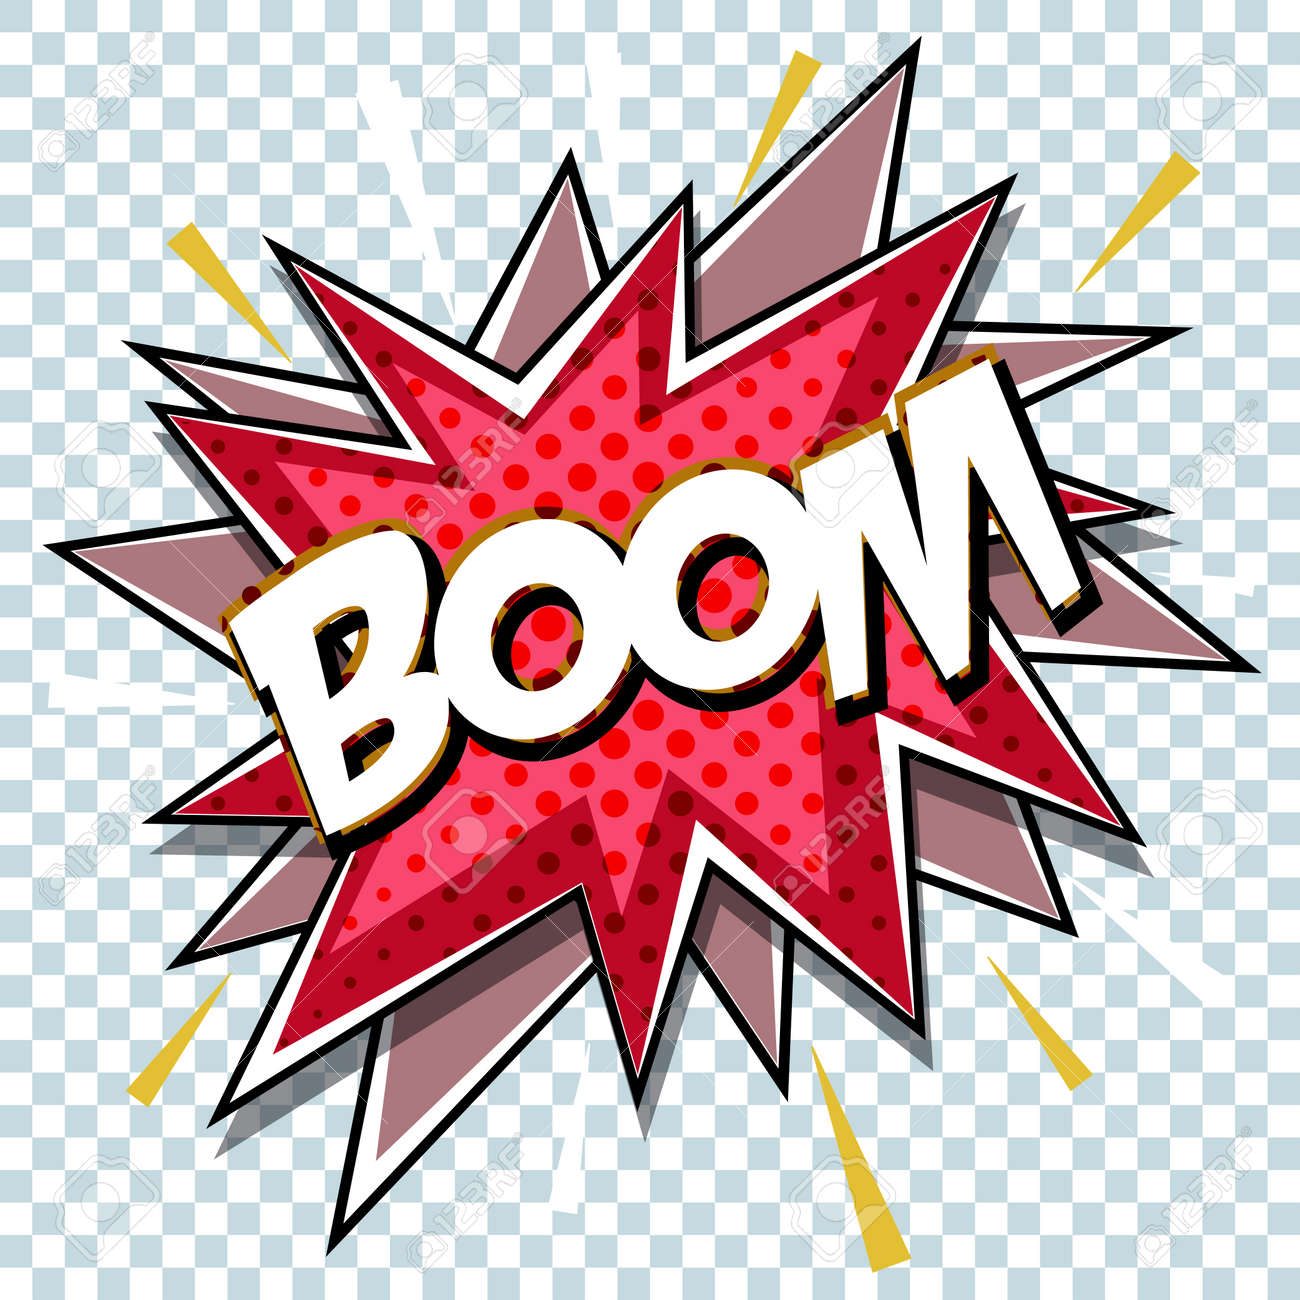 Cartoon comic graphic design for explosion blast dialog box background with sound BOOM. Vector - 84956245